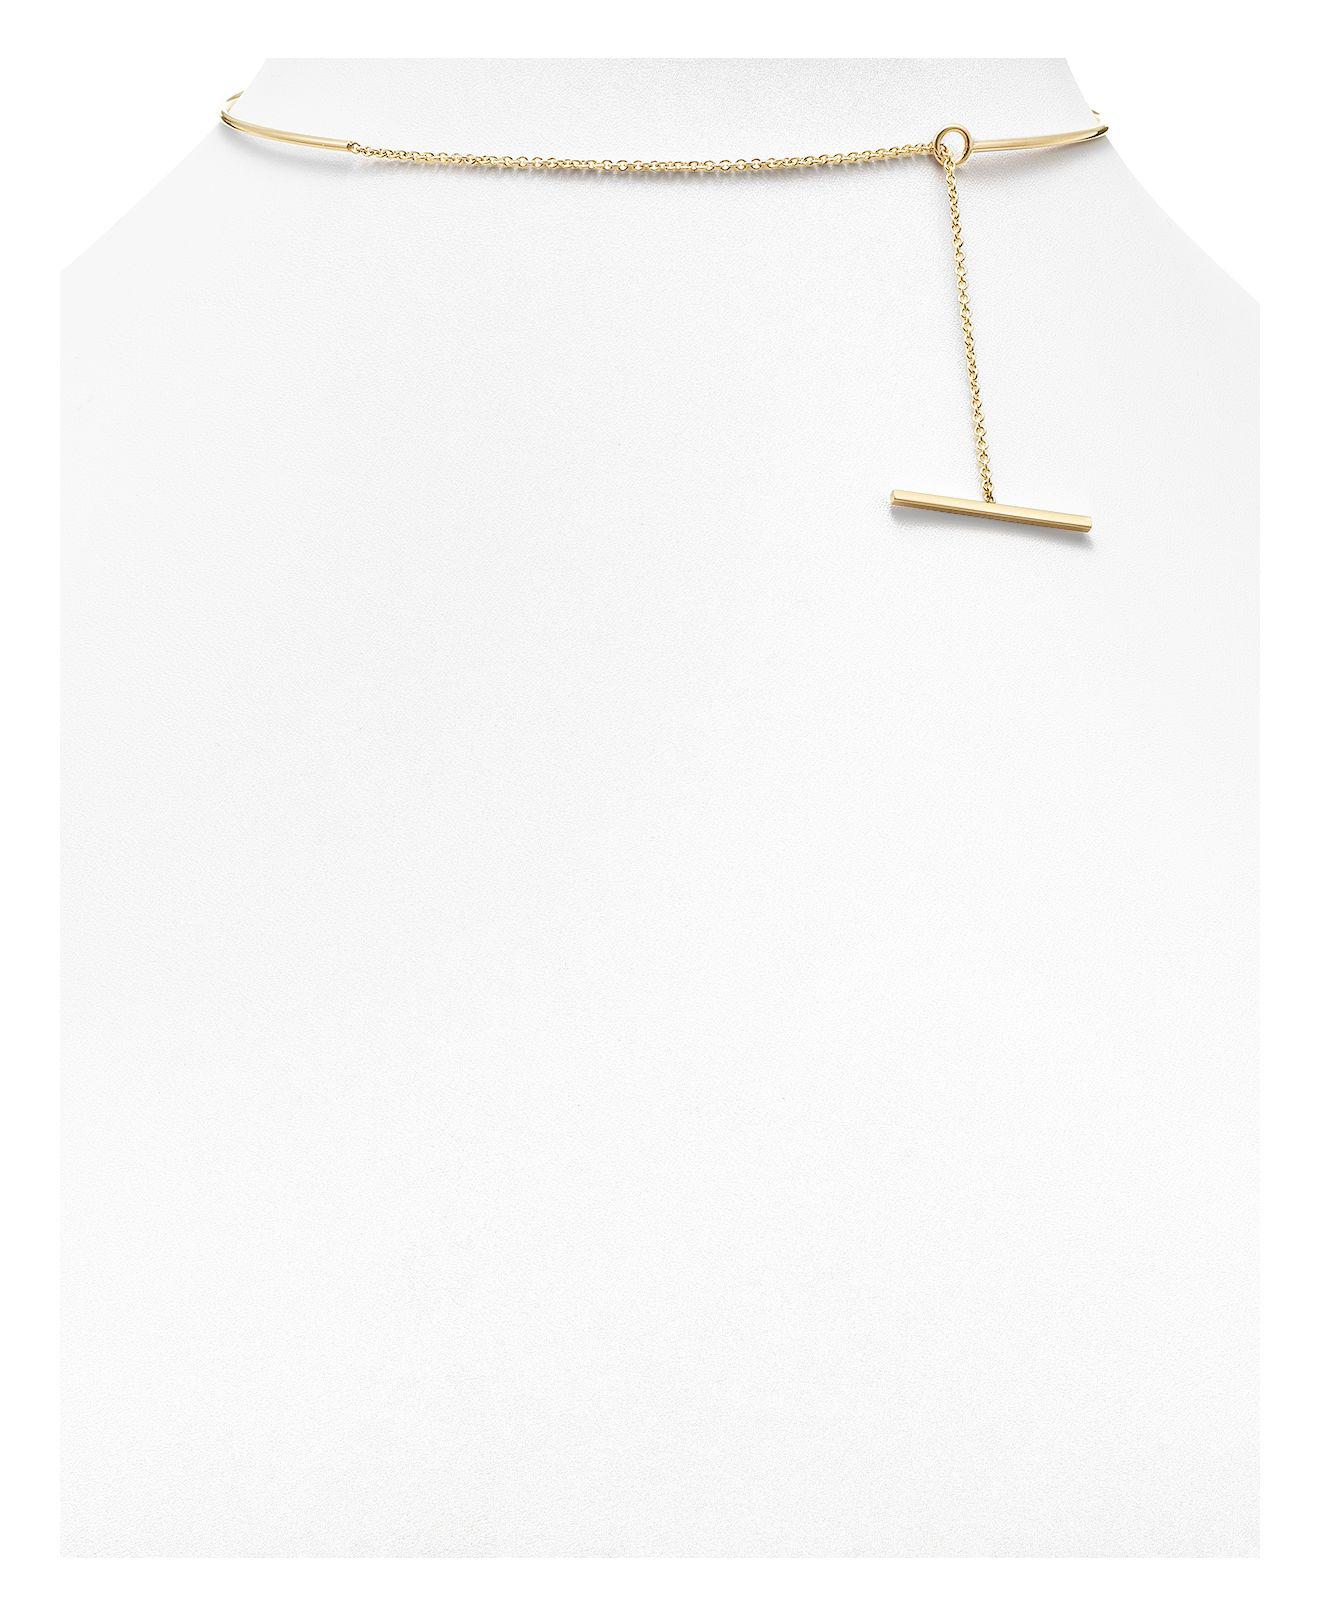 d75b5861302e5 Lyst - Zoe Chicco 14k Yellow Gold Wire And Toggle Chain Choker ...